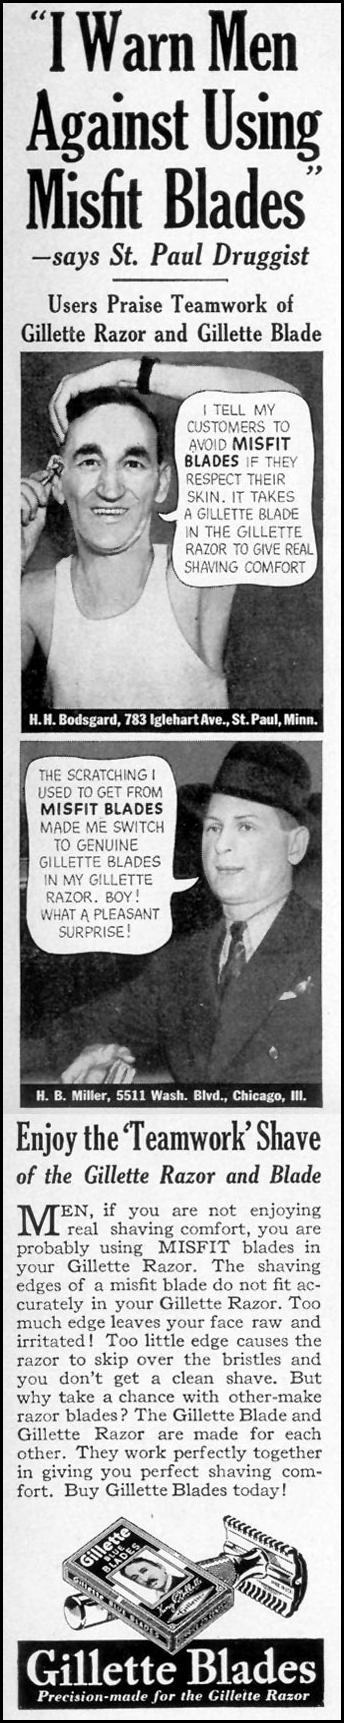 GILLETTE RAZORS AND BLADES LIFE 08/09/1937 p. 5